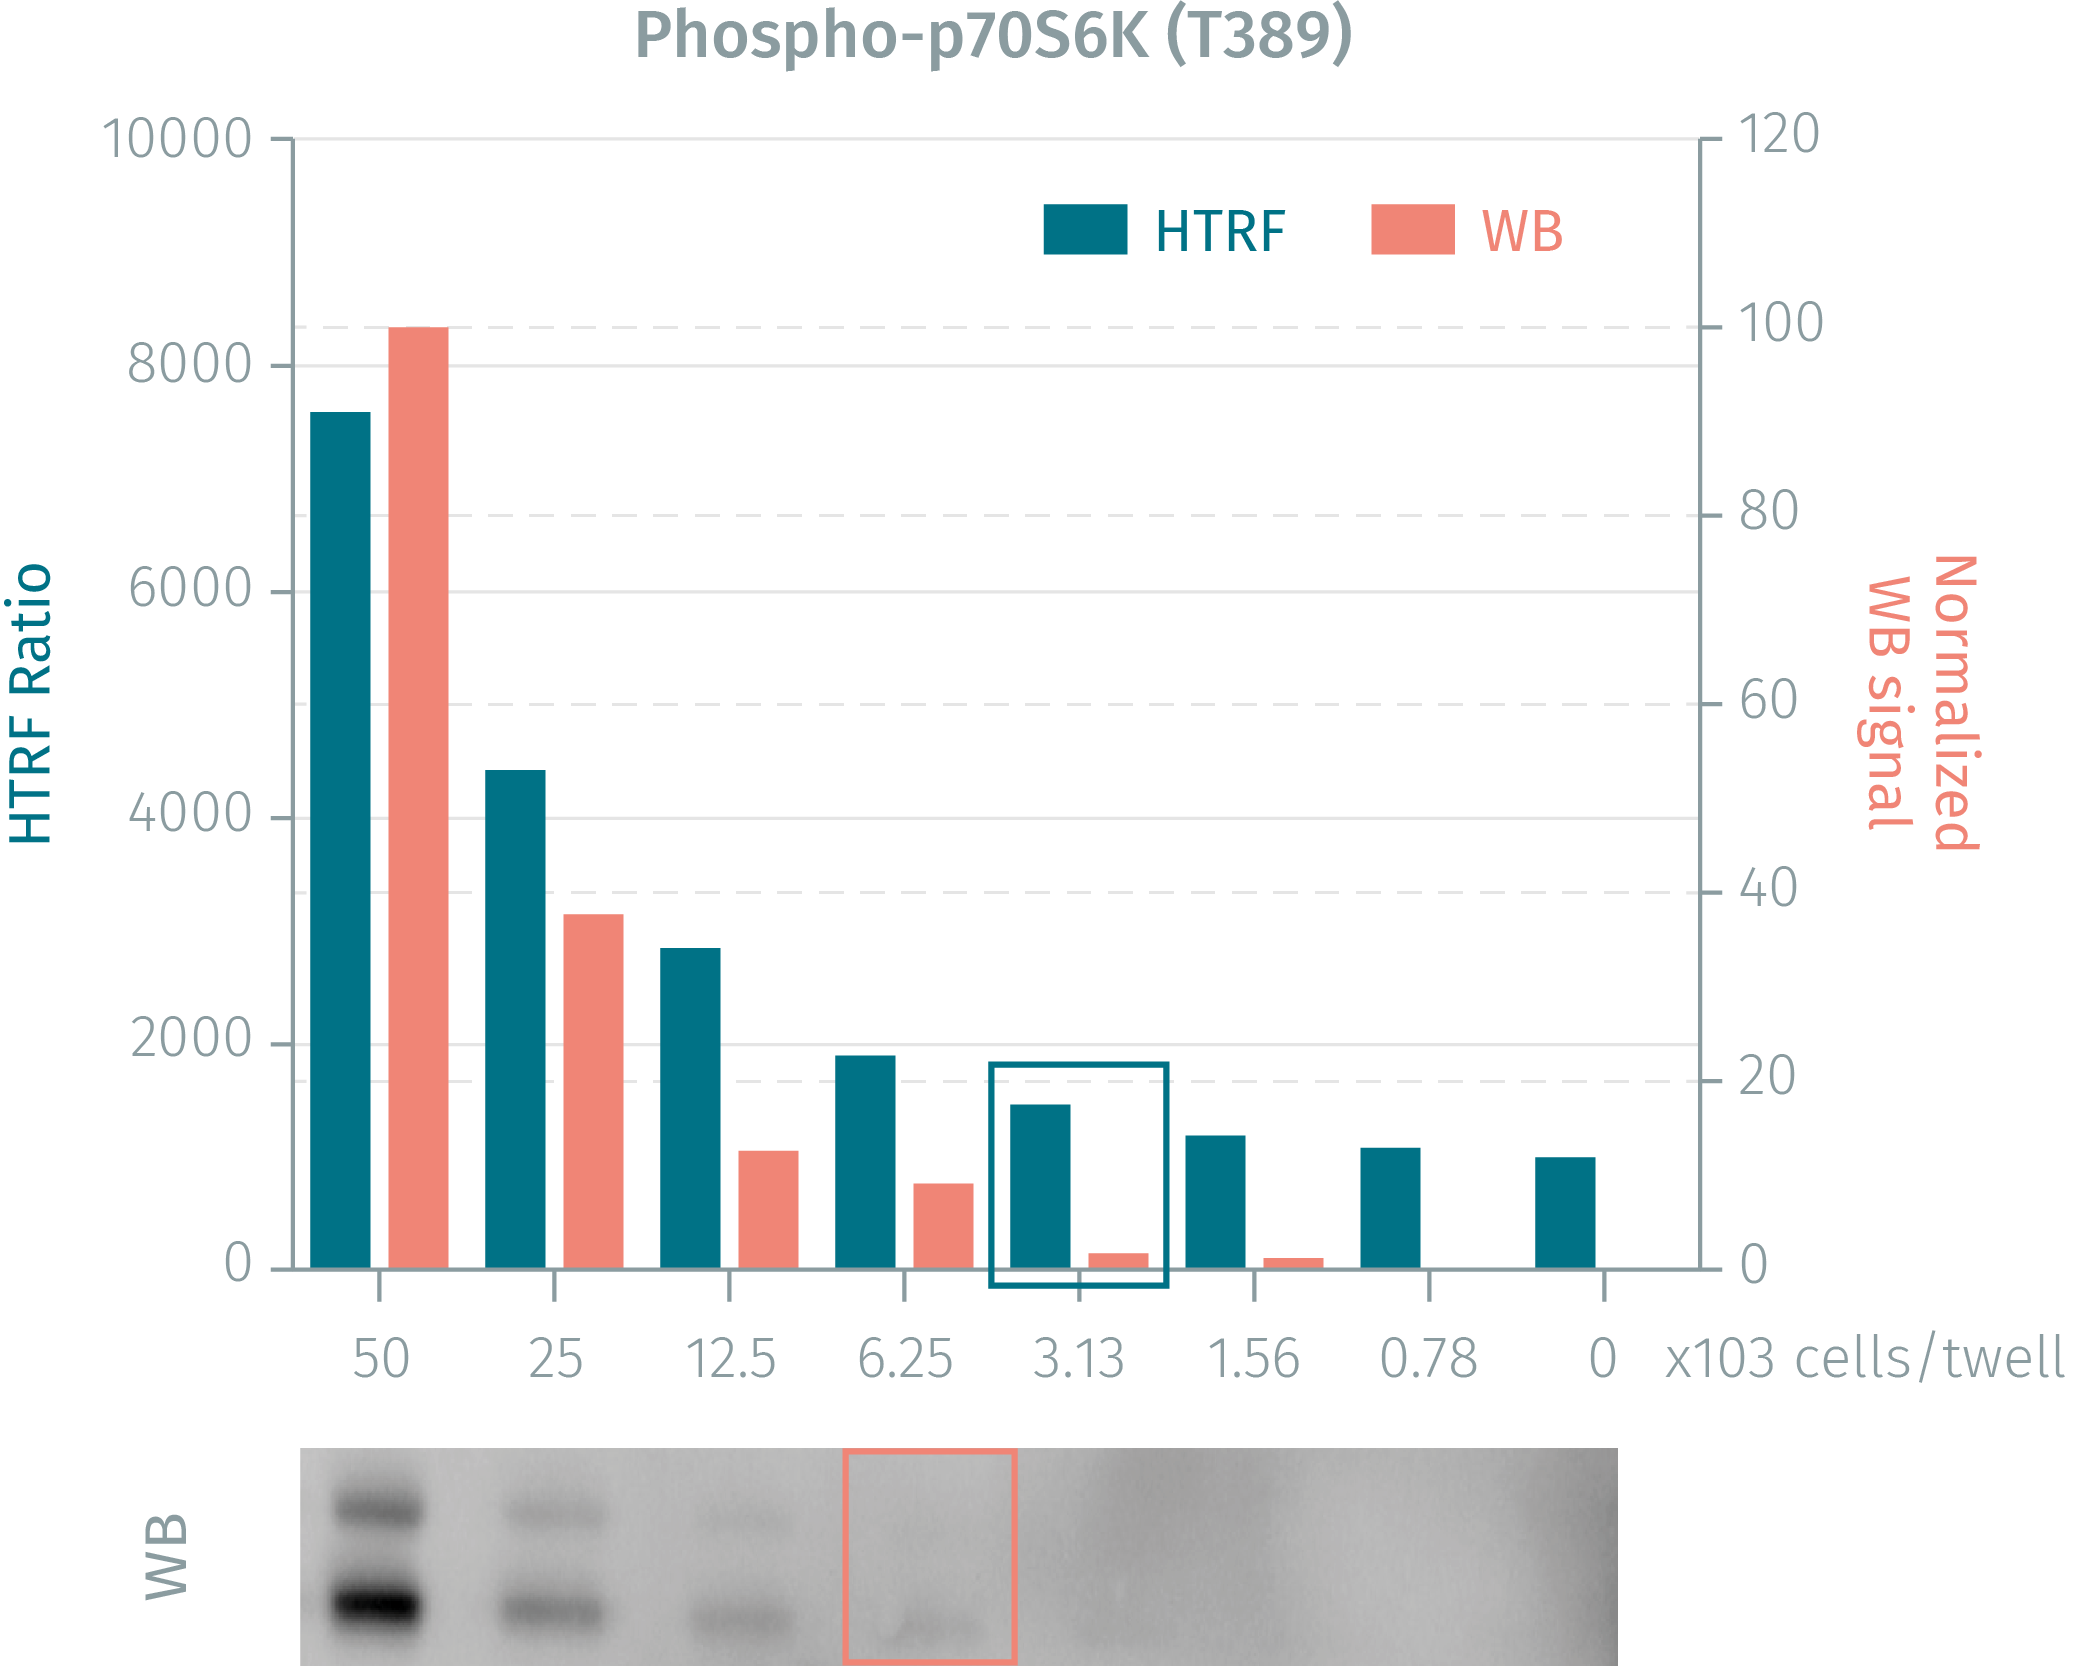 HTRF assay compared to WB using phospho-p70S6K cellular assay